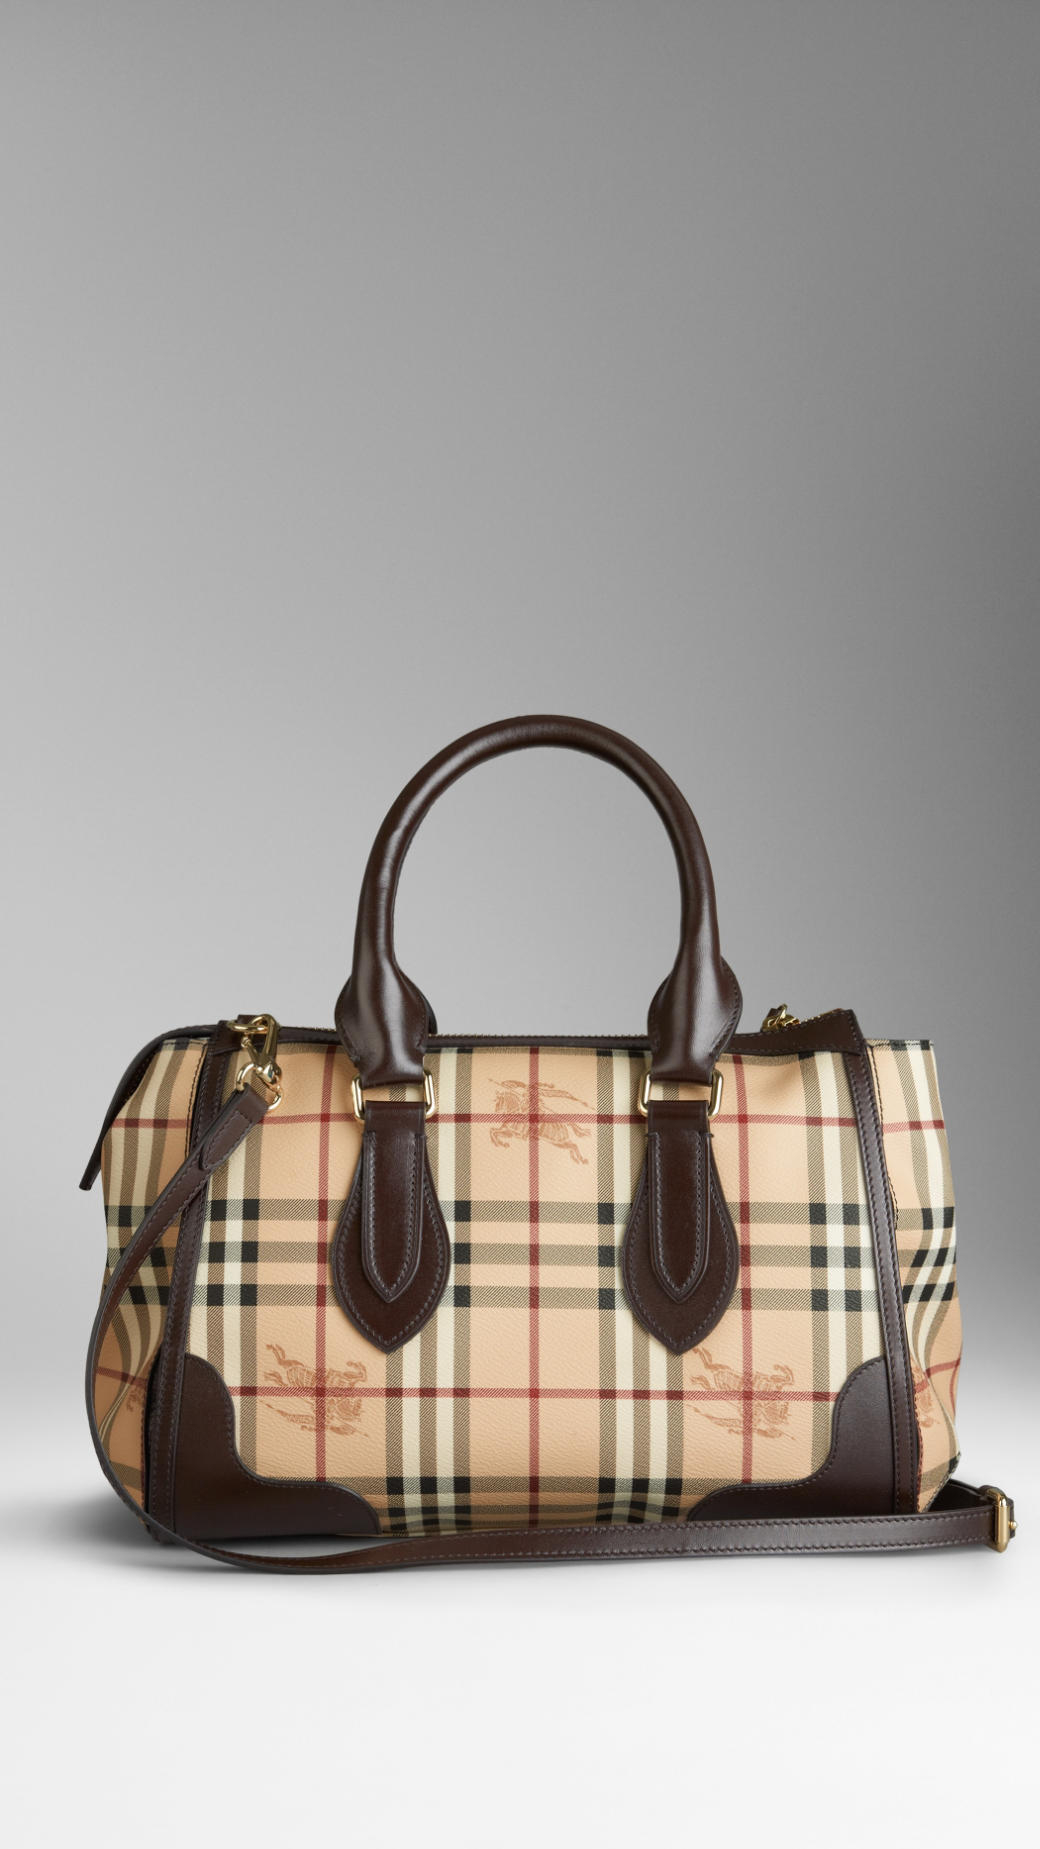 Burberry Plaid Purses - Best Purse Image Ccdbb.Org 945a8d7c90164